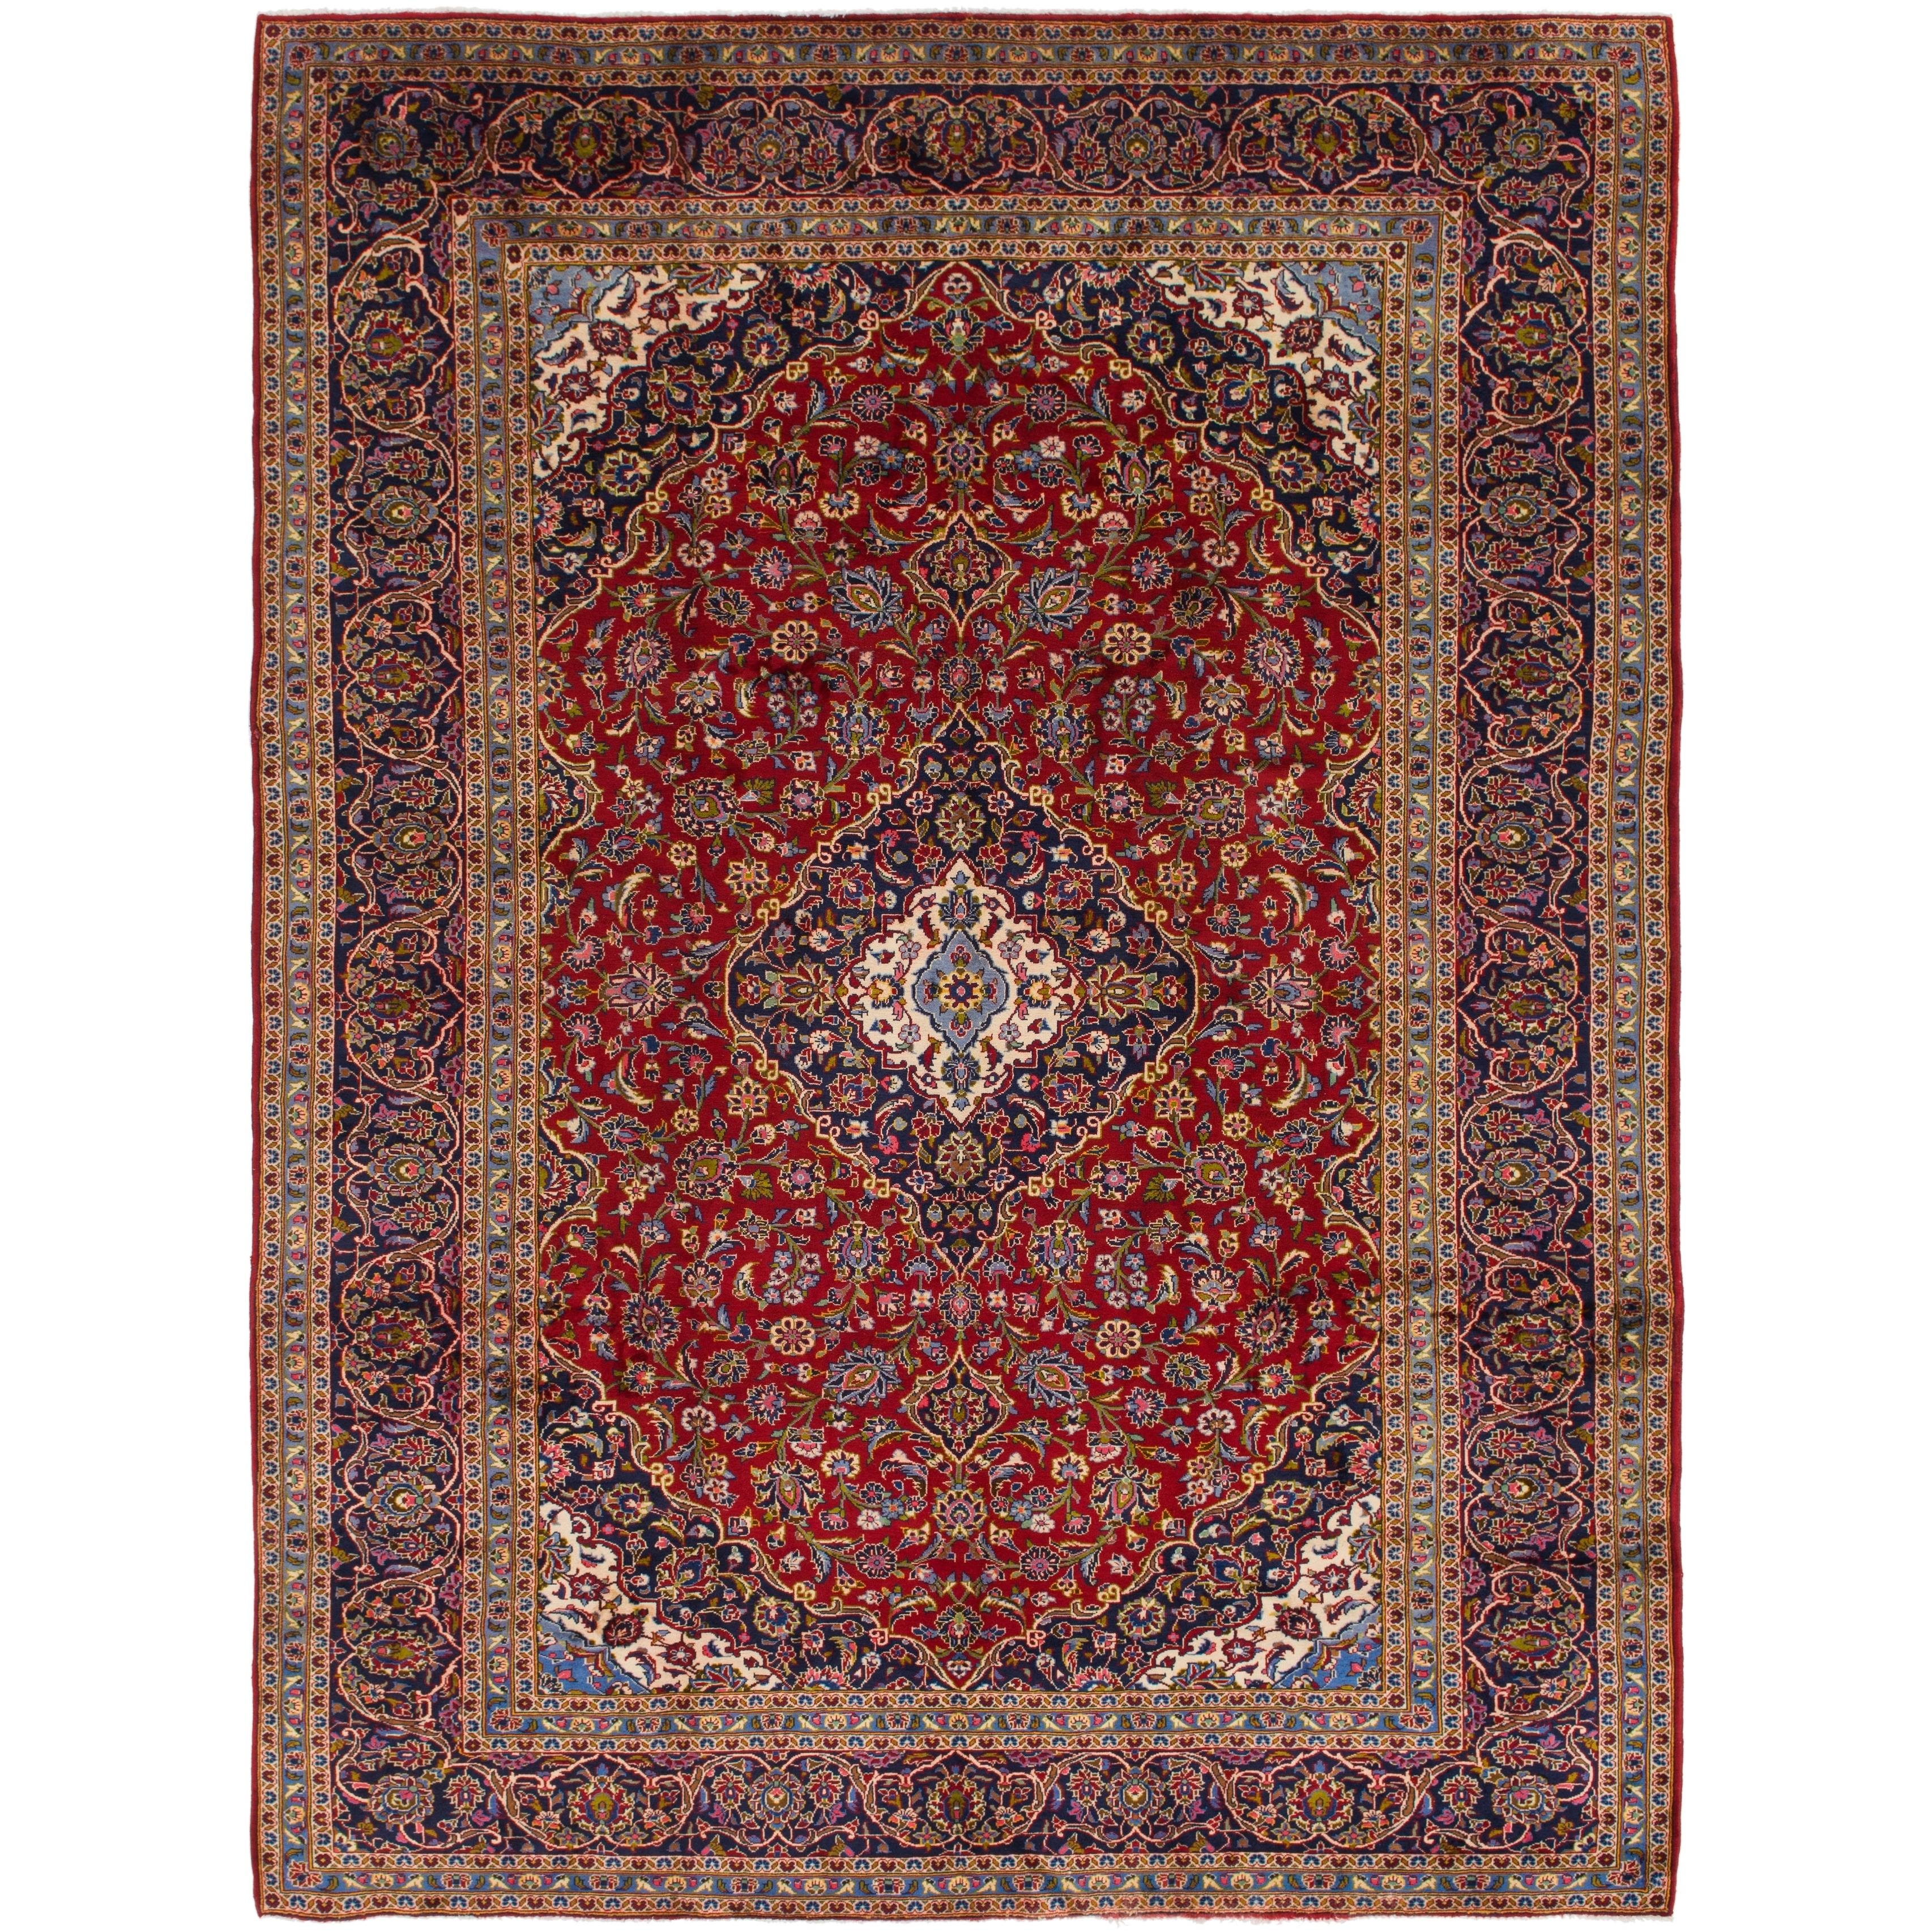 Hand Knotted Kashan Semi Antique Wool Area Rug - 10 x 13 4 (Red - 10 x 13 4)